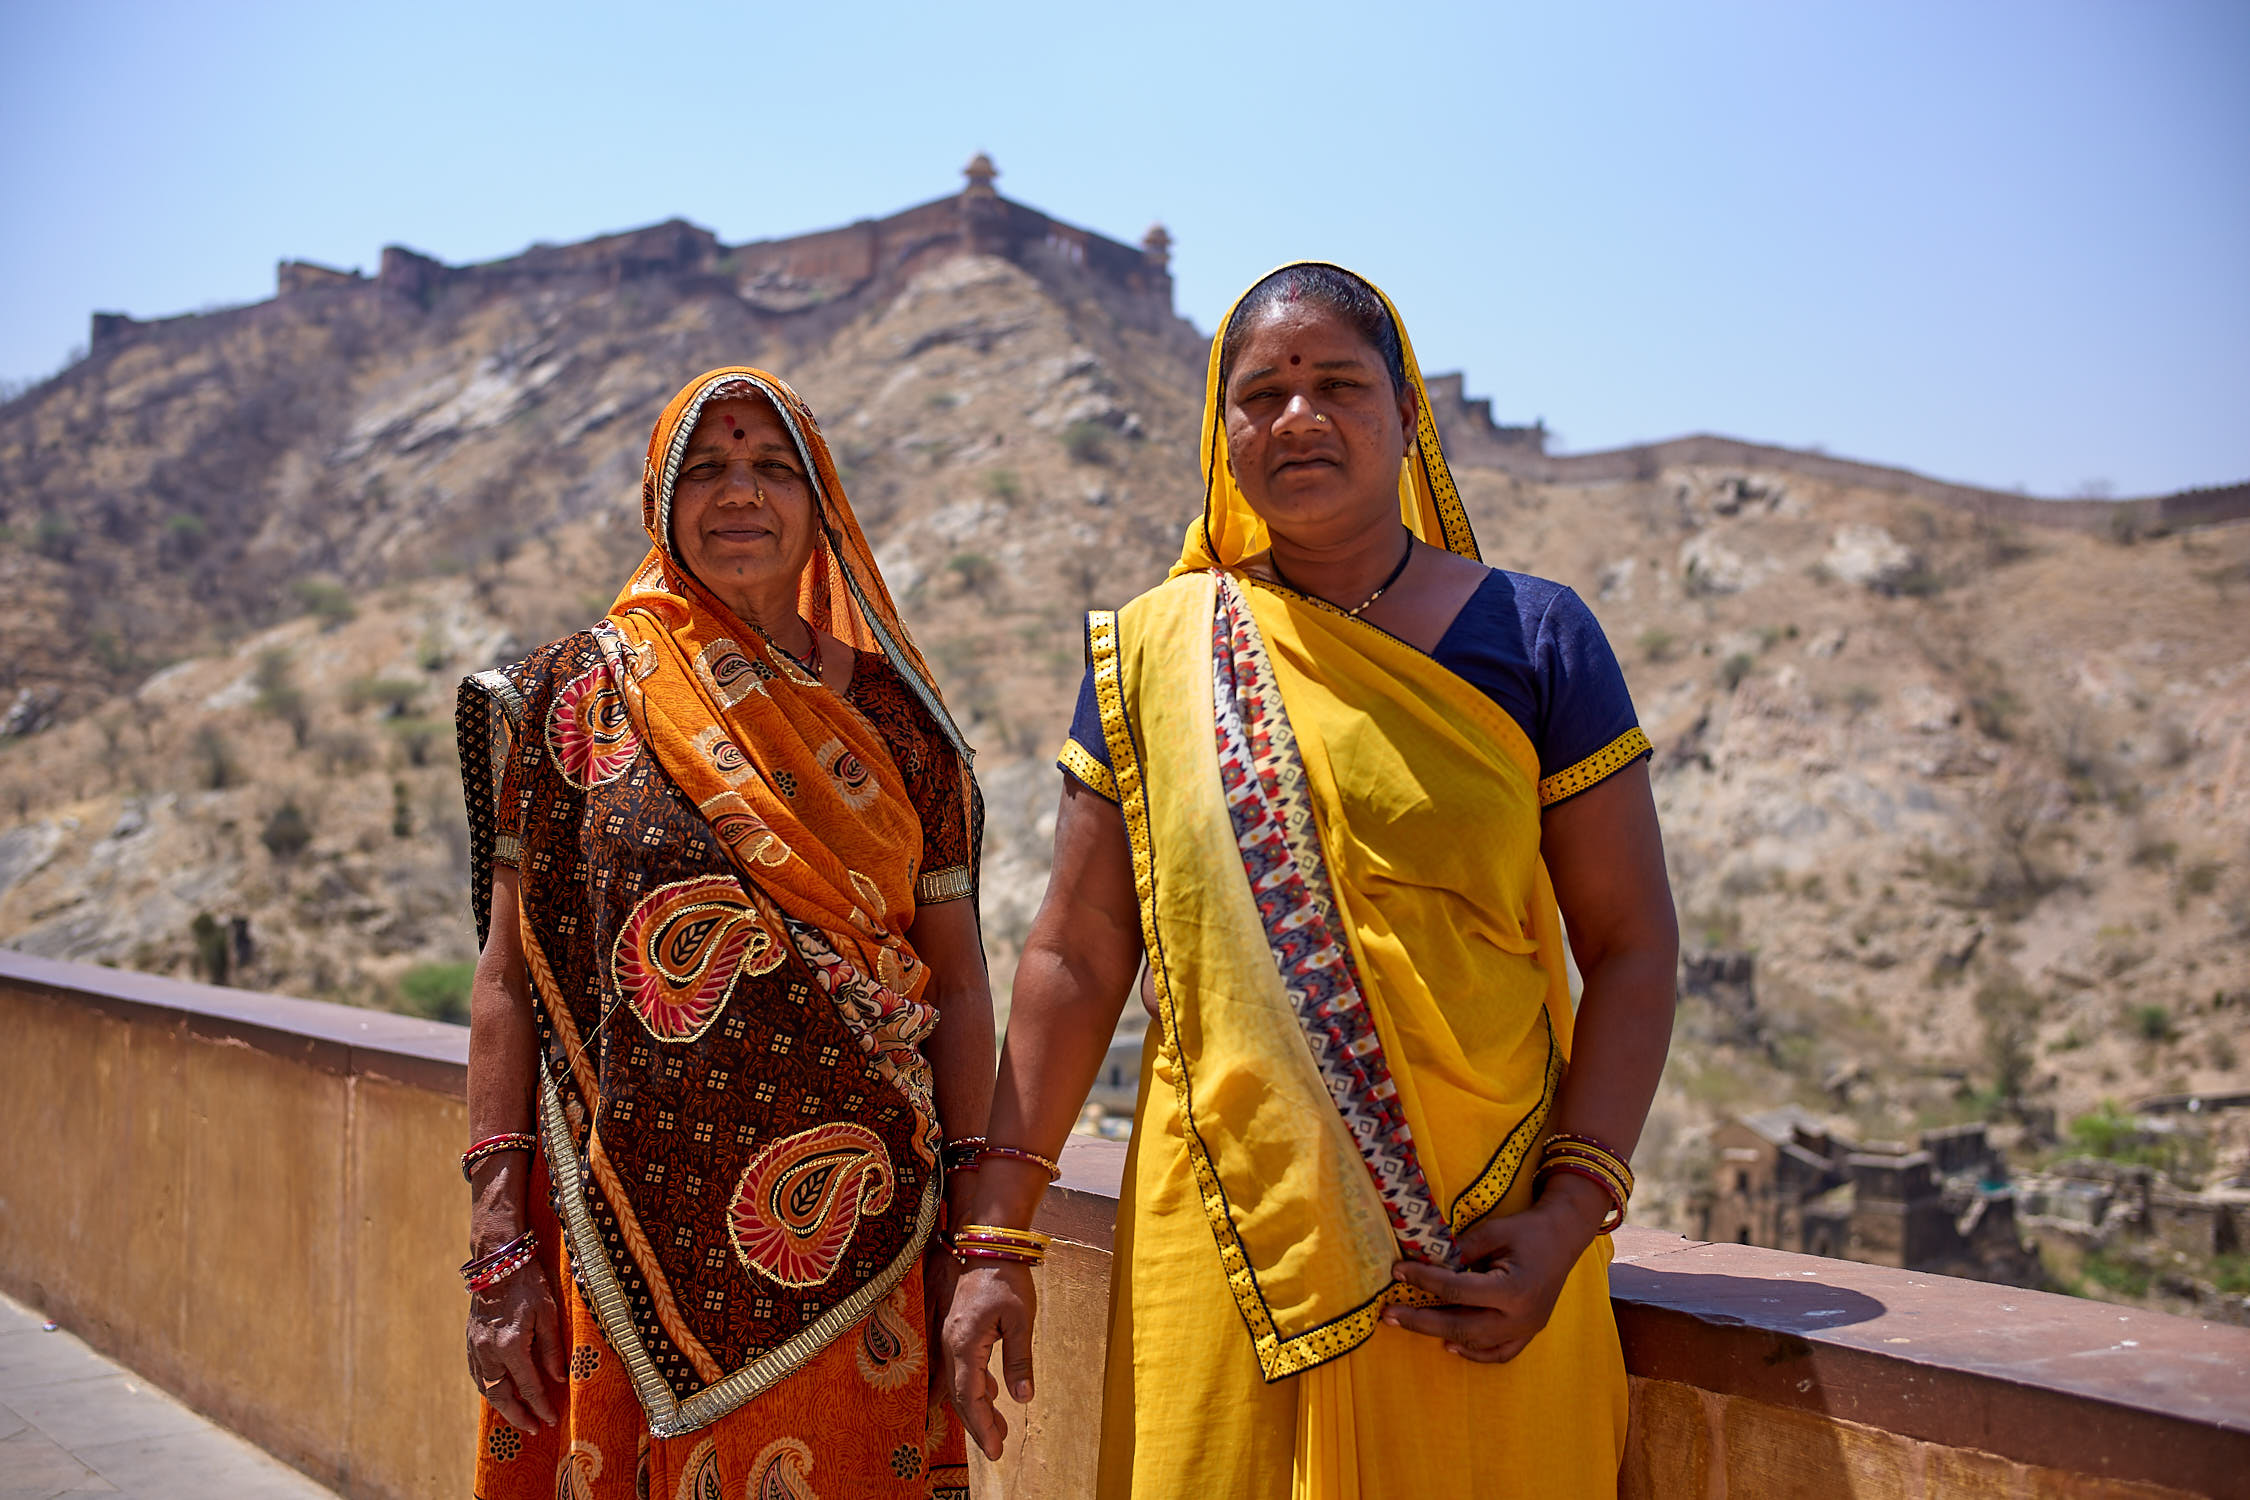 Ladies posing at Amer Fort, Jaipur